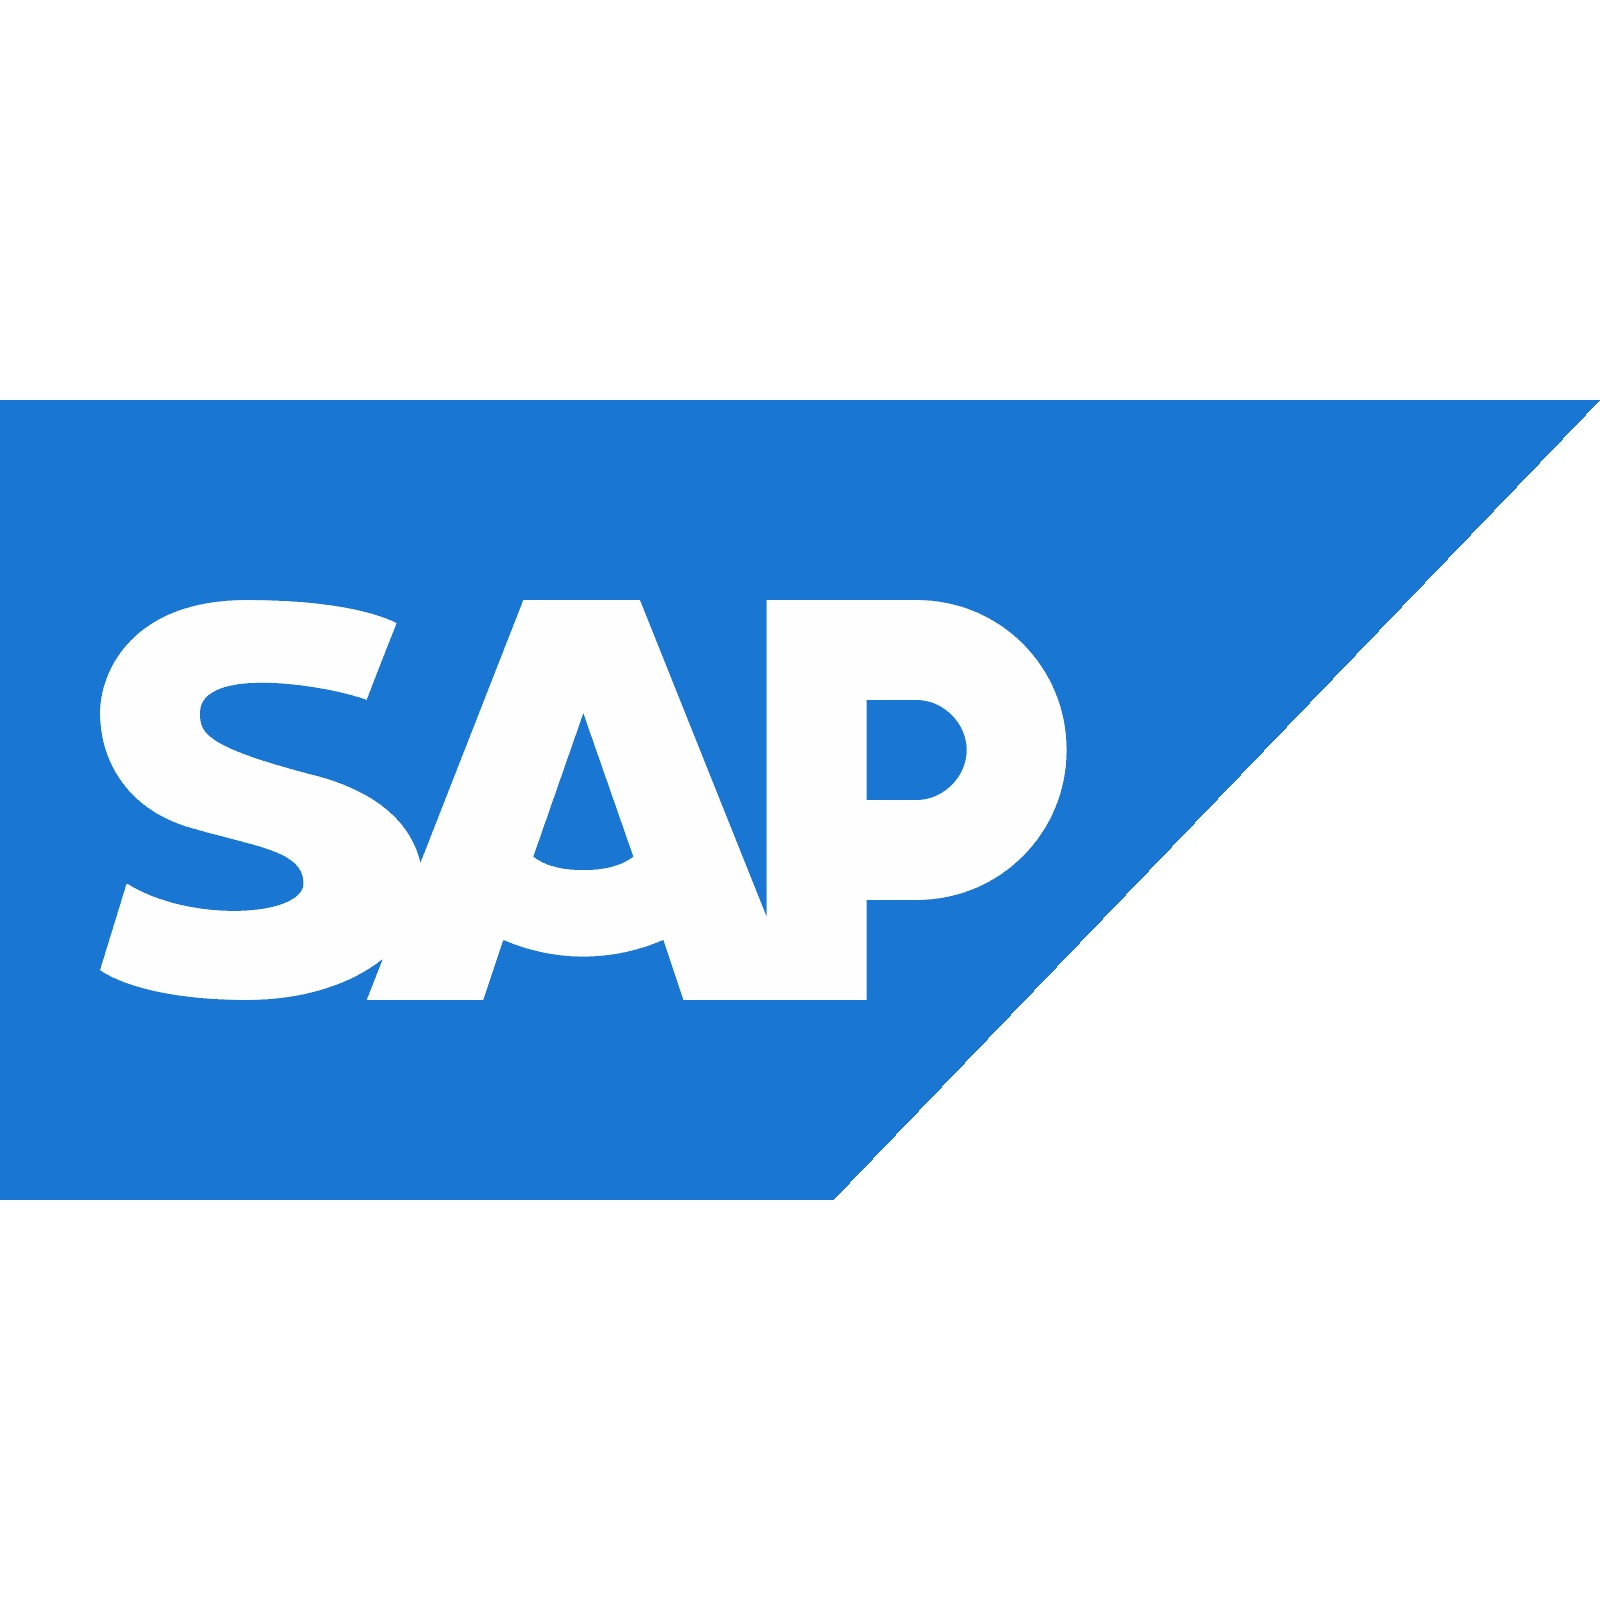 SAP spins out financial services operations in deal with Dediq